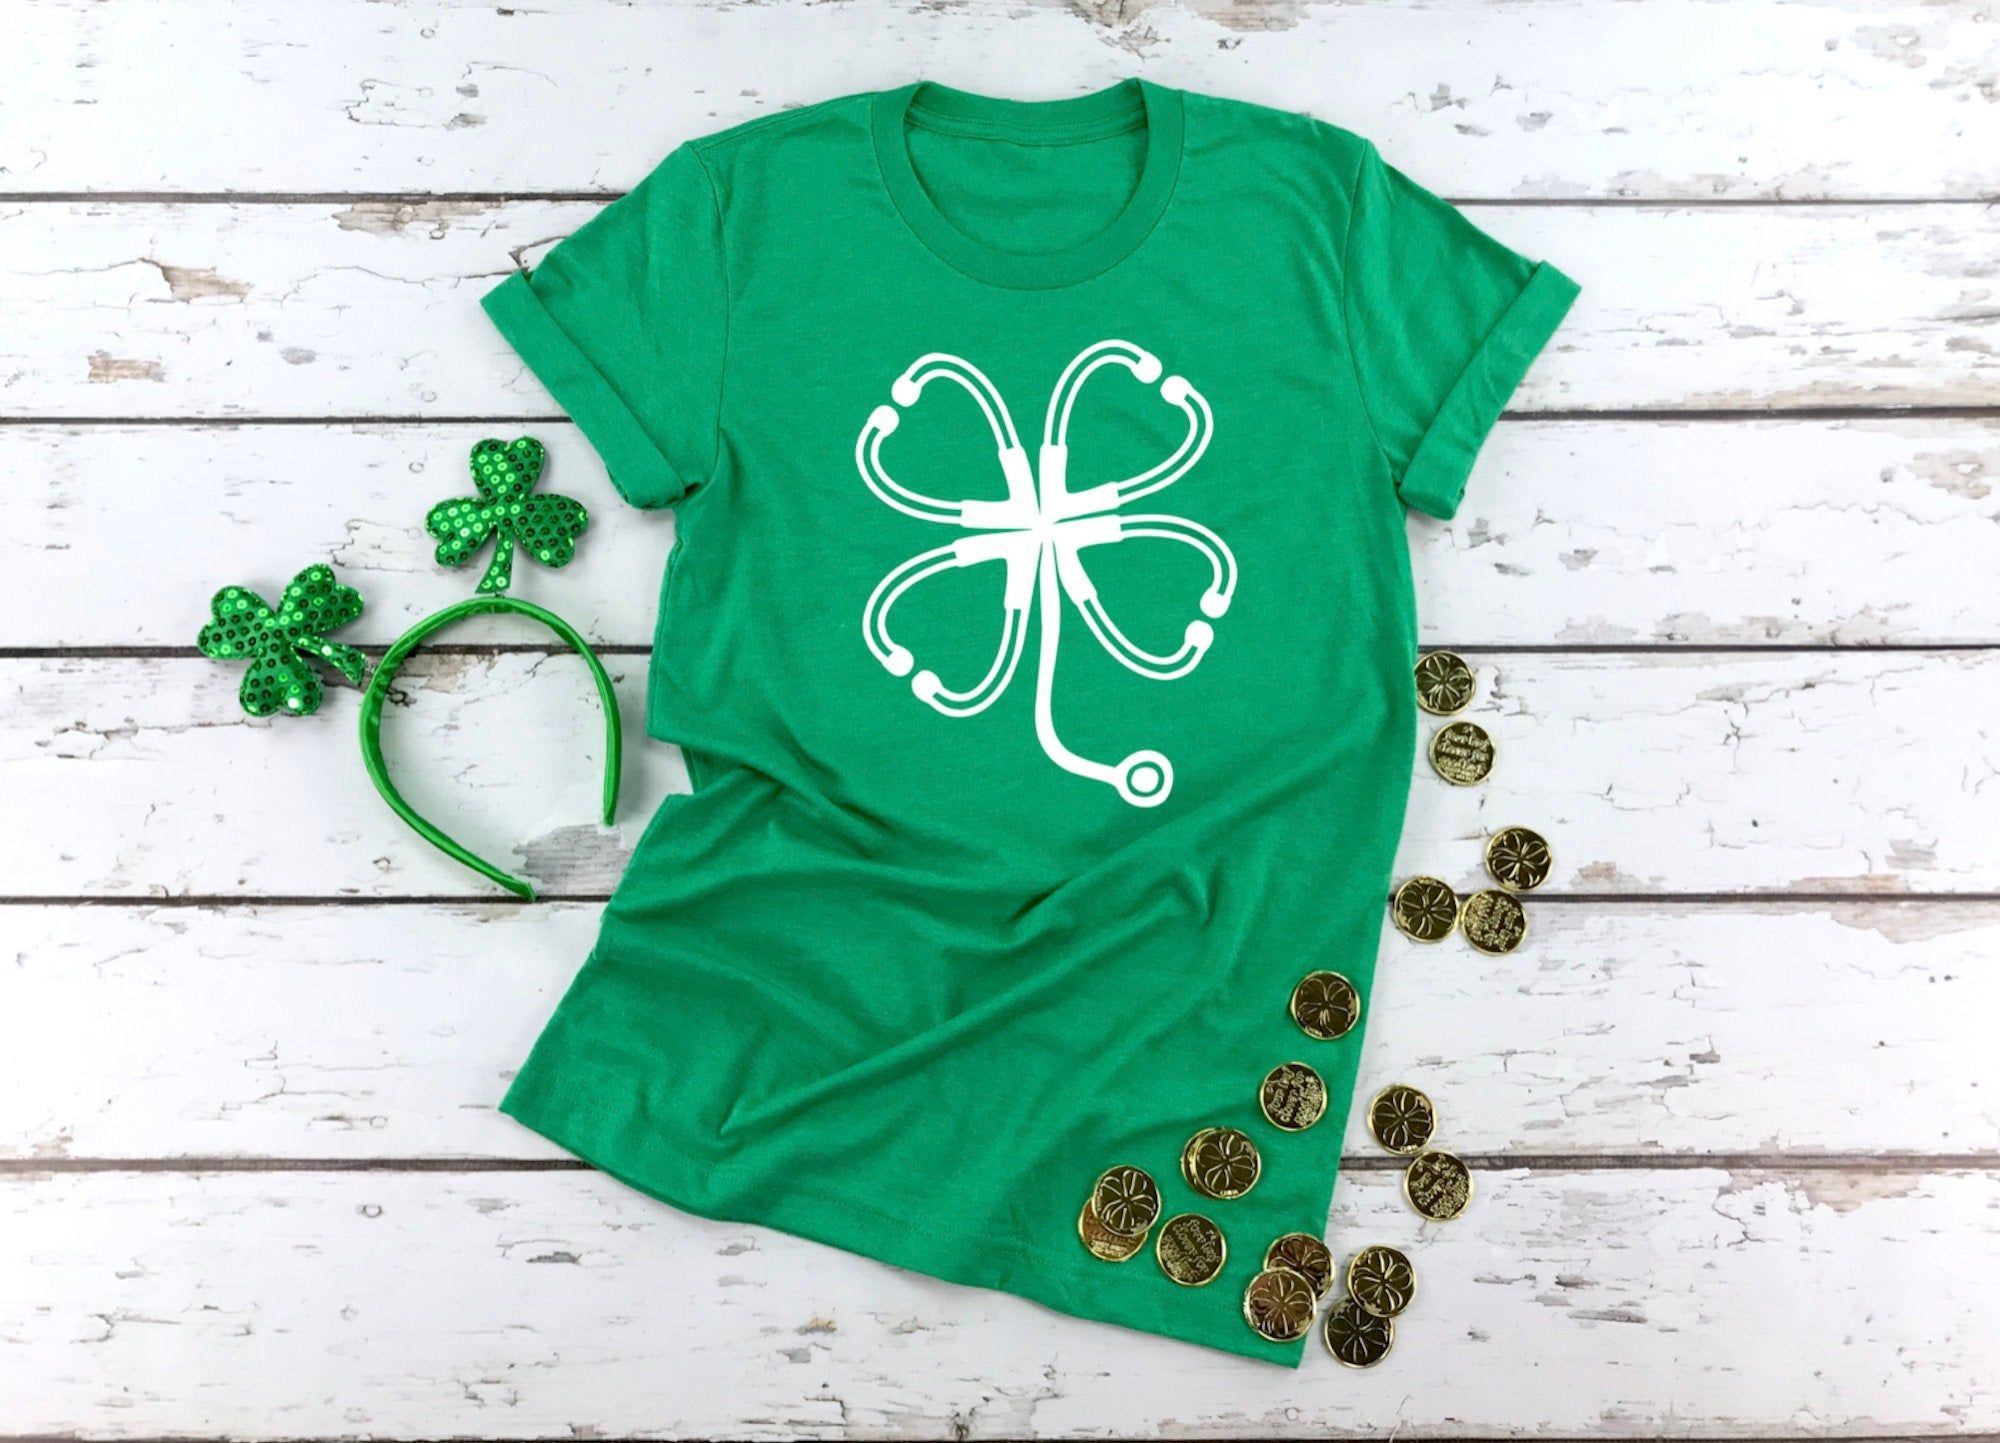 Unique Baby Boys Clover Patch Wagon St Patricks Day Outfit Shirt